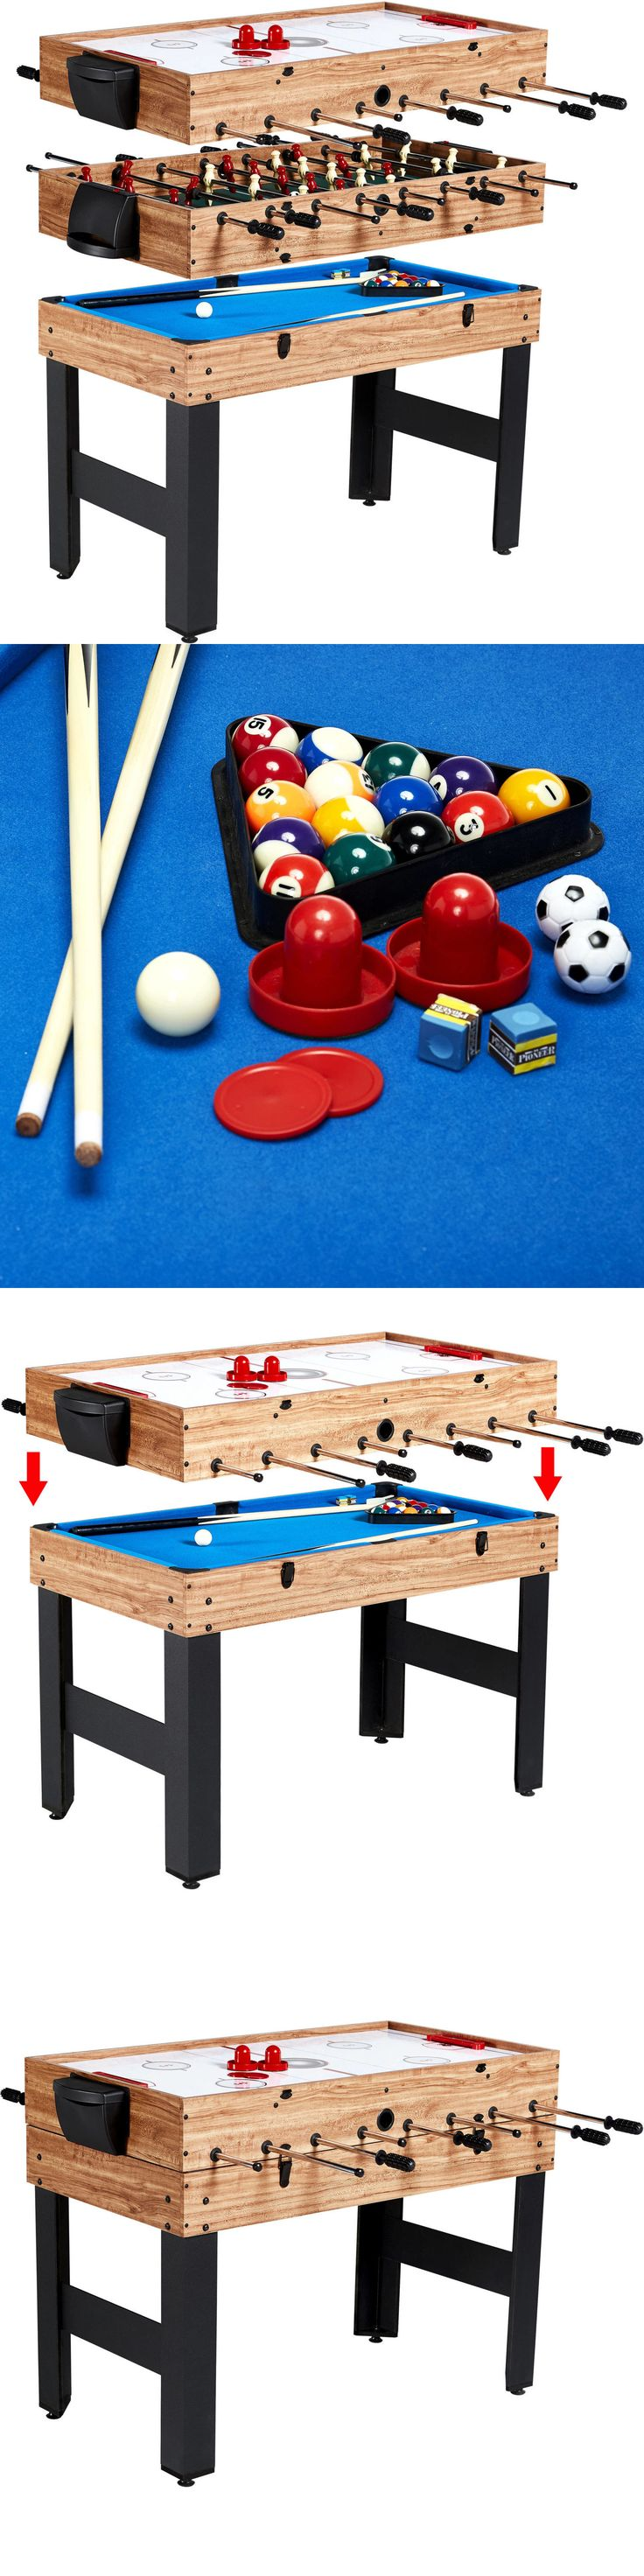 Tables 97075: 48 Combo Multi Sports Game Table Billiards Slide Hockey Soccer Indoor Outdoor -> BUY IT NOW ONLY: $101.22 on eBay!